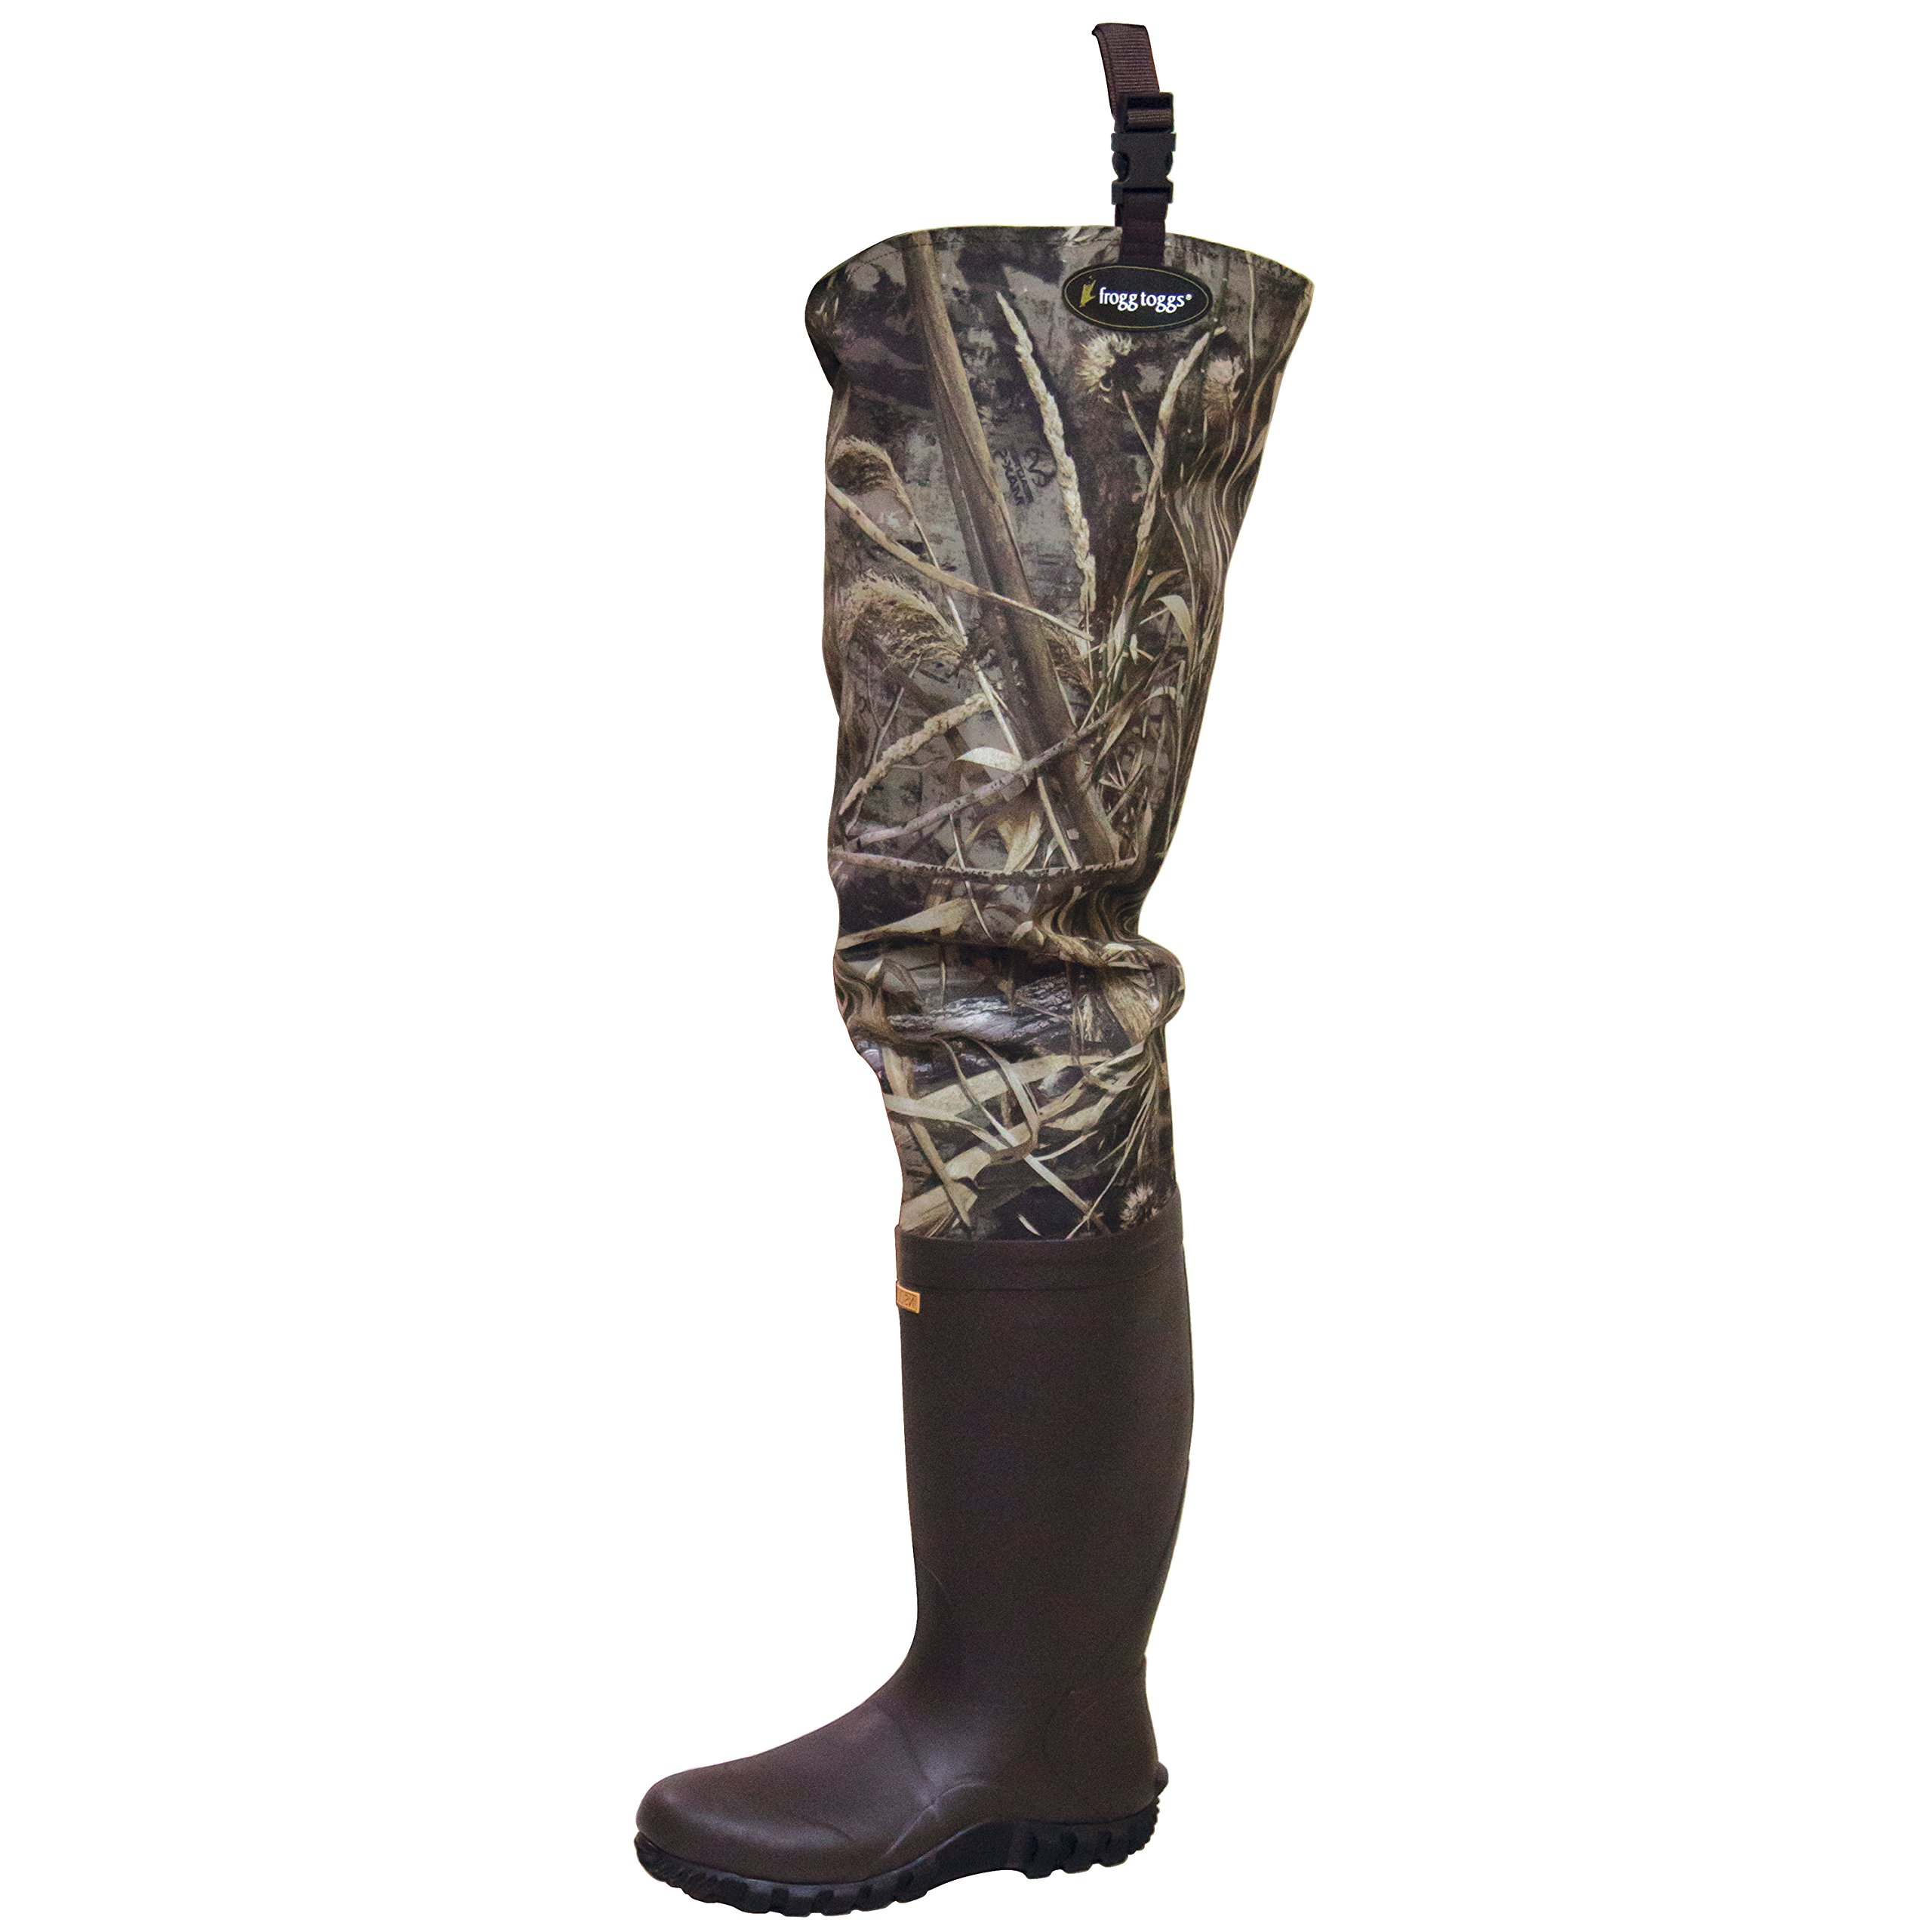 Frogg Toggs Bogg Togg 2-ply Poly/Rubber Hip Wader, Realtree Max5, Size 13